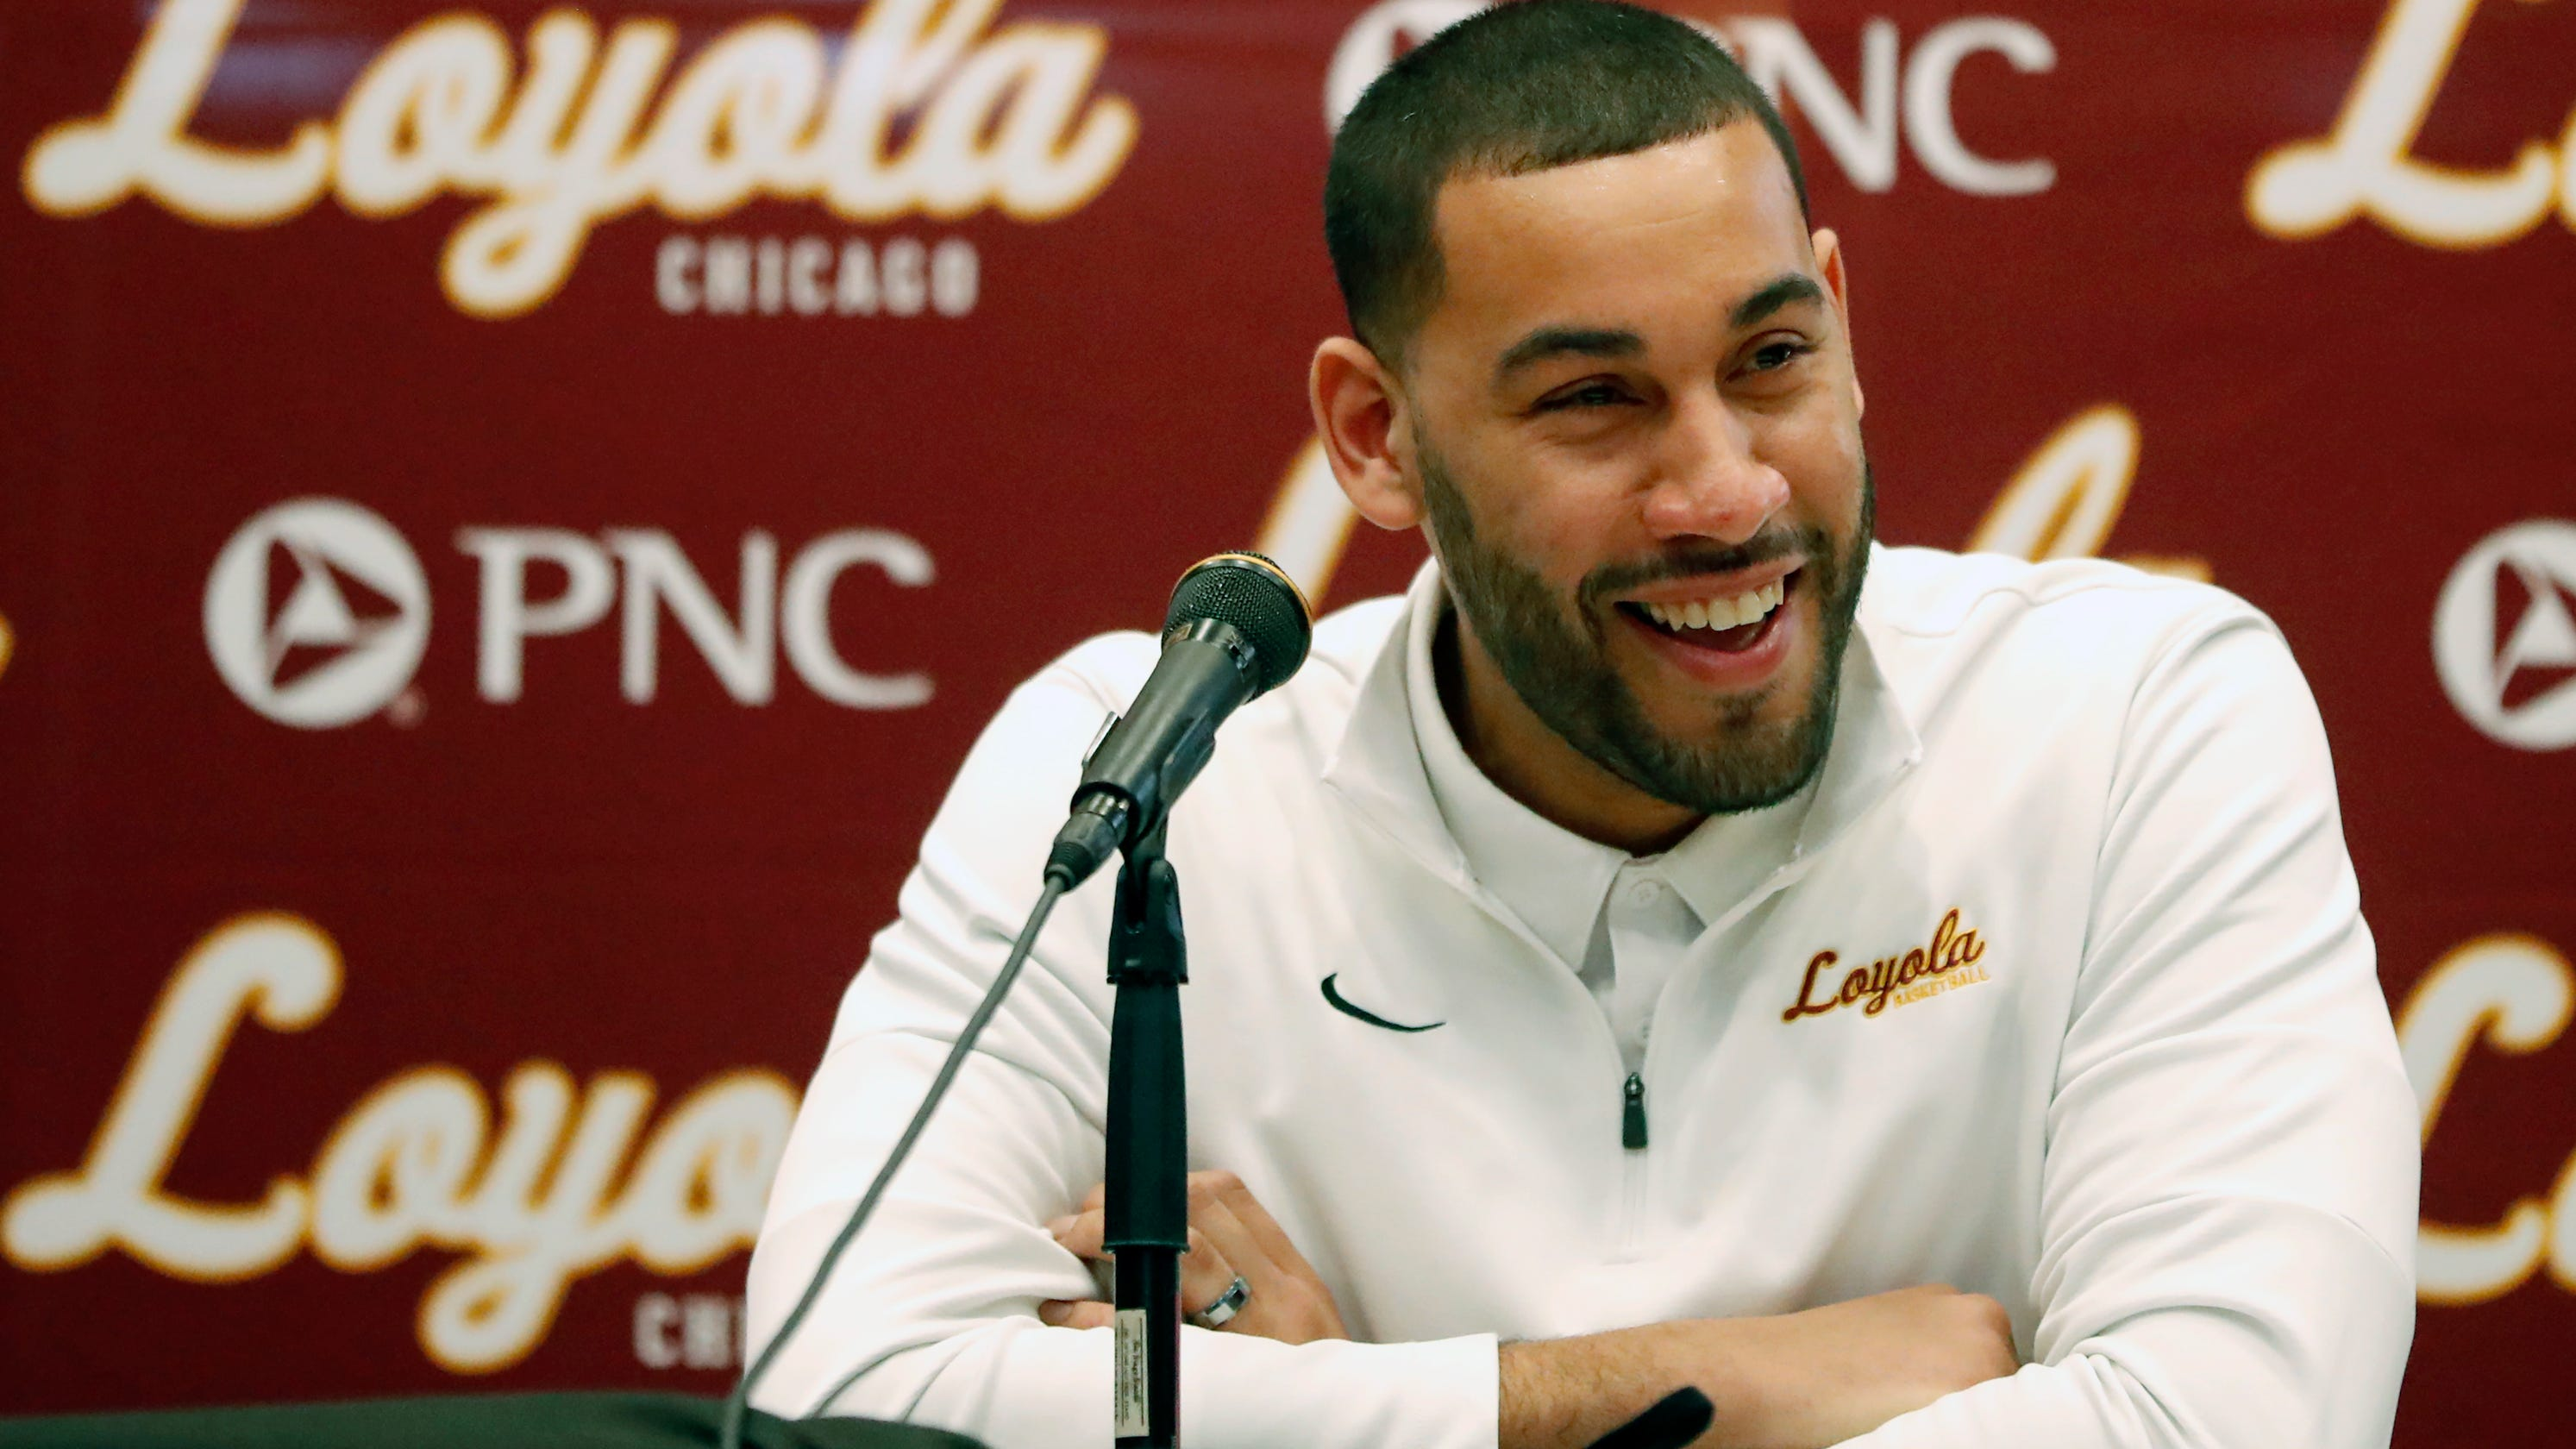 With big act to follow, Drew Valentine takes over at Loyola